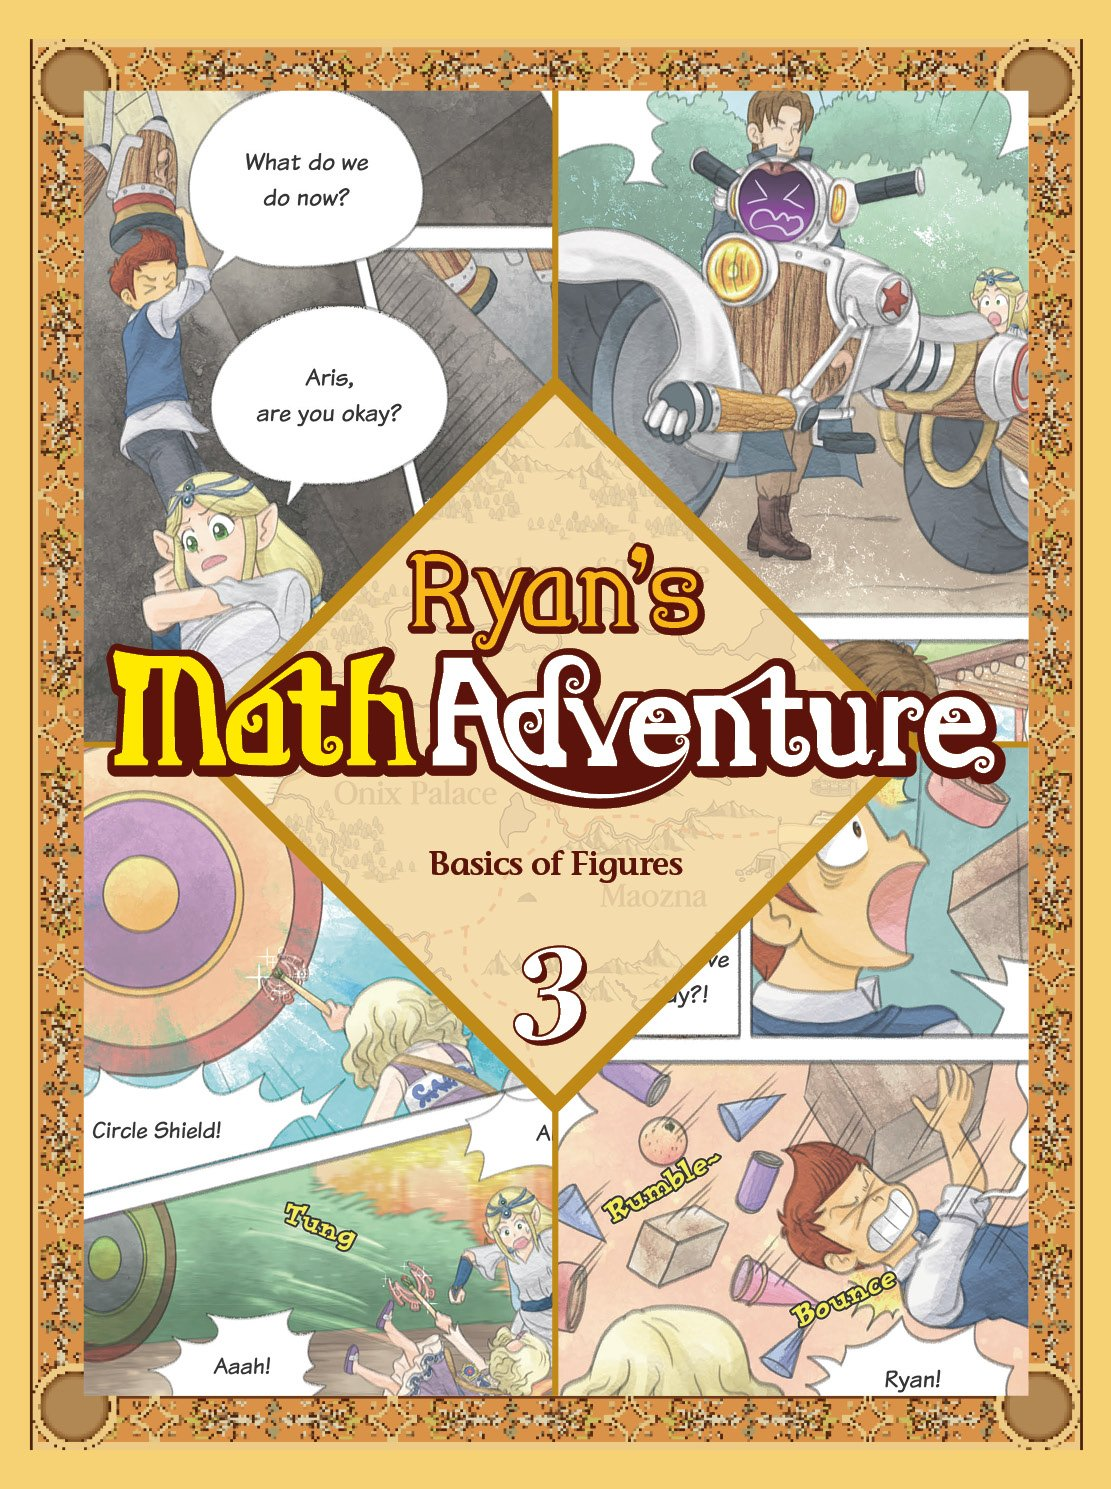 Ryan's Math Adventure 3: Basics of Figures. Enjoy & Practice Numbers and Math Foundation by Providing Your Children with Fun, Educational, and Playful Fantasy Cartoon. For Ages 6-10. Text fb2 ebook